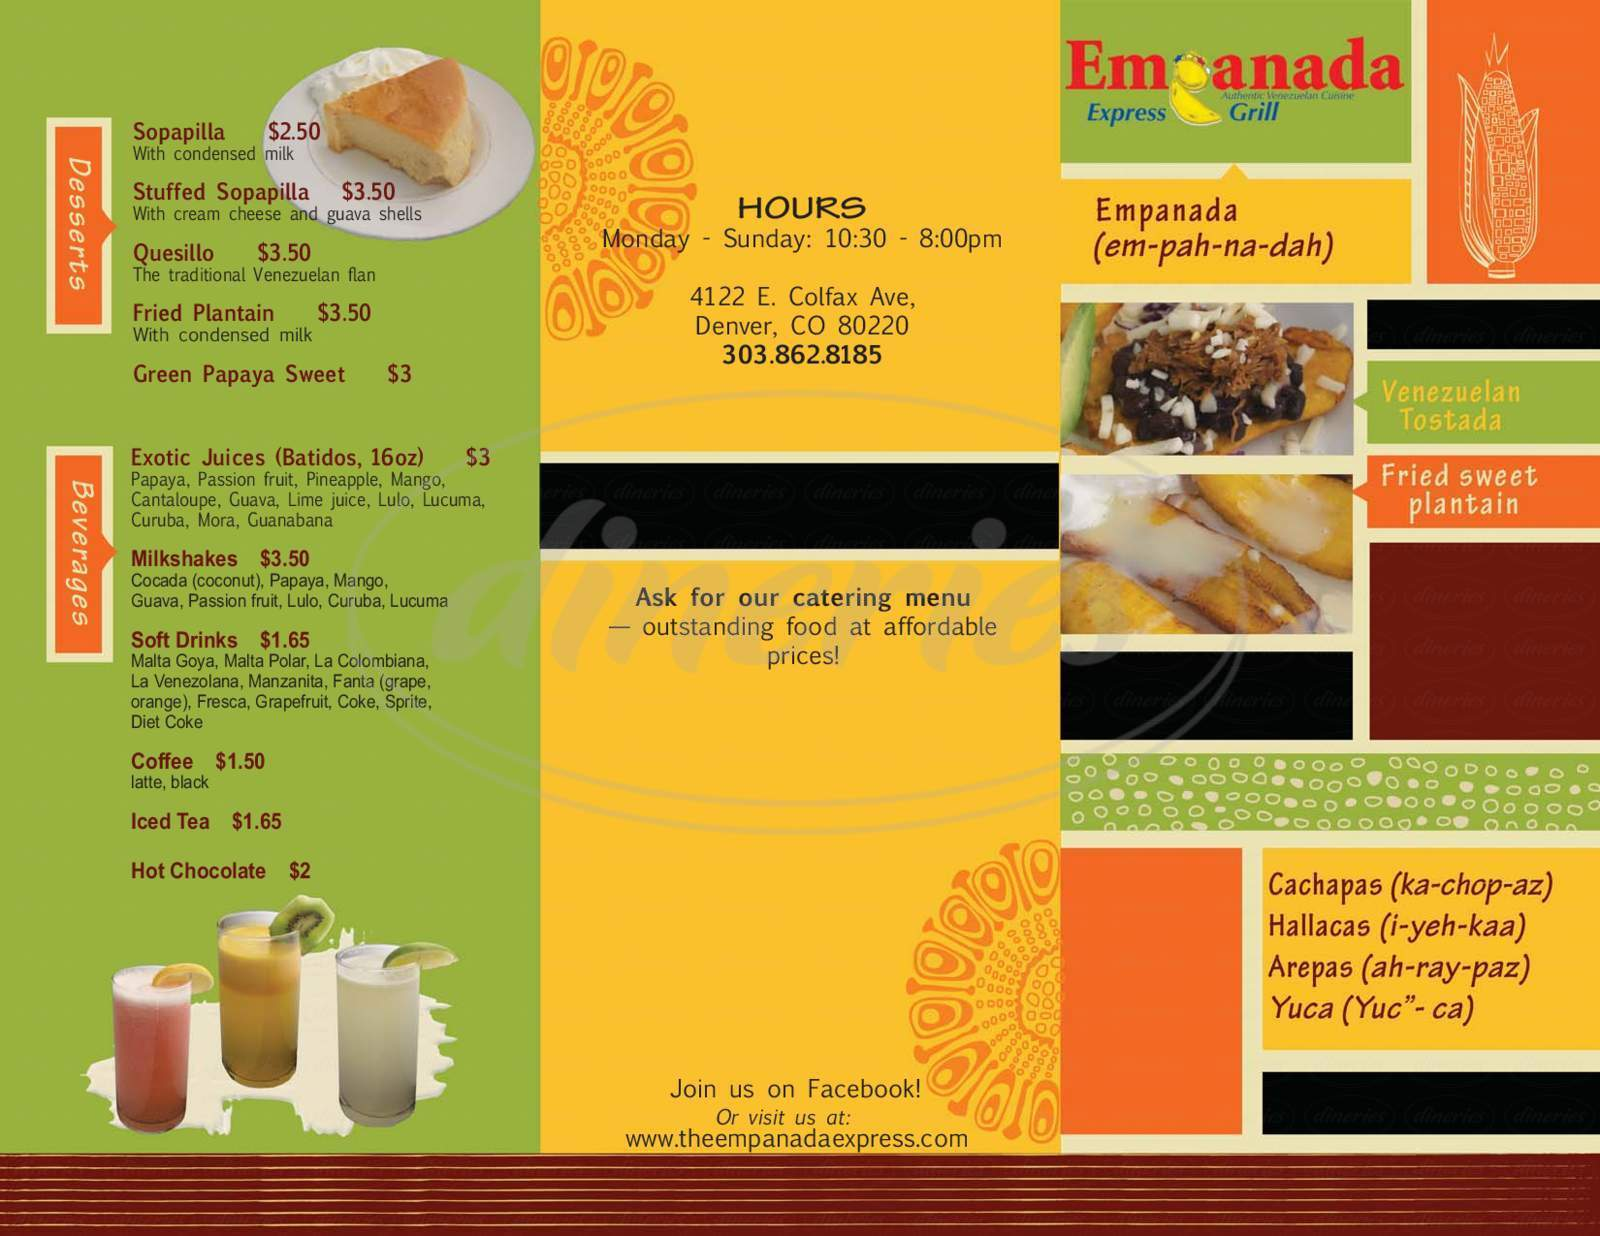 menu for Empanada Express Grill